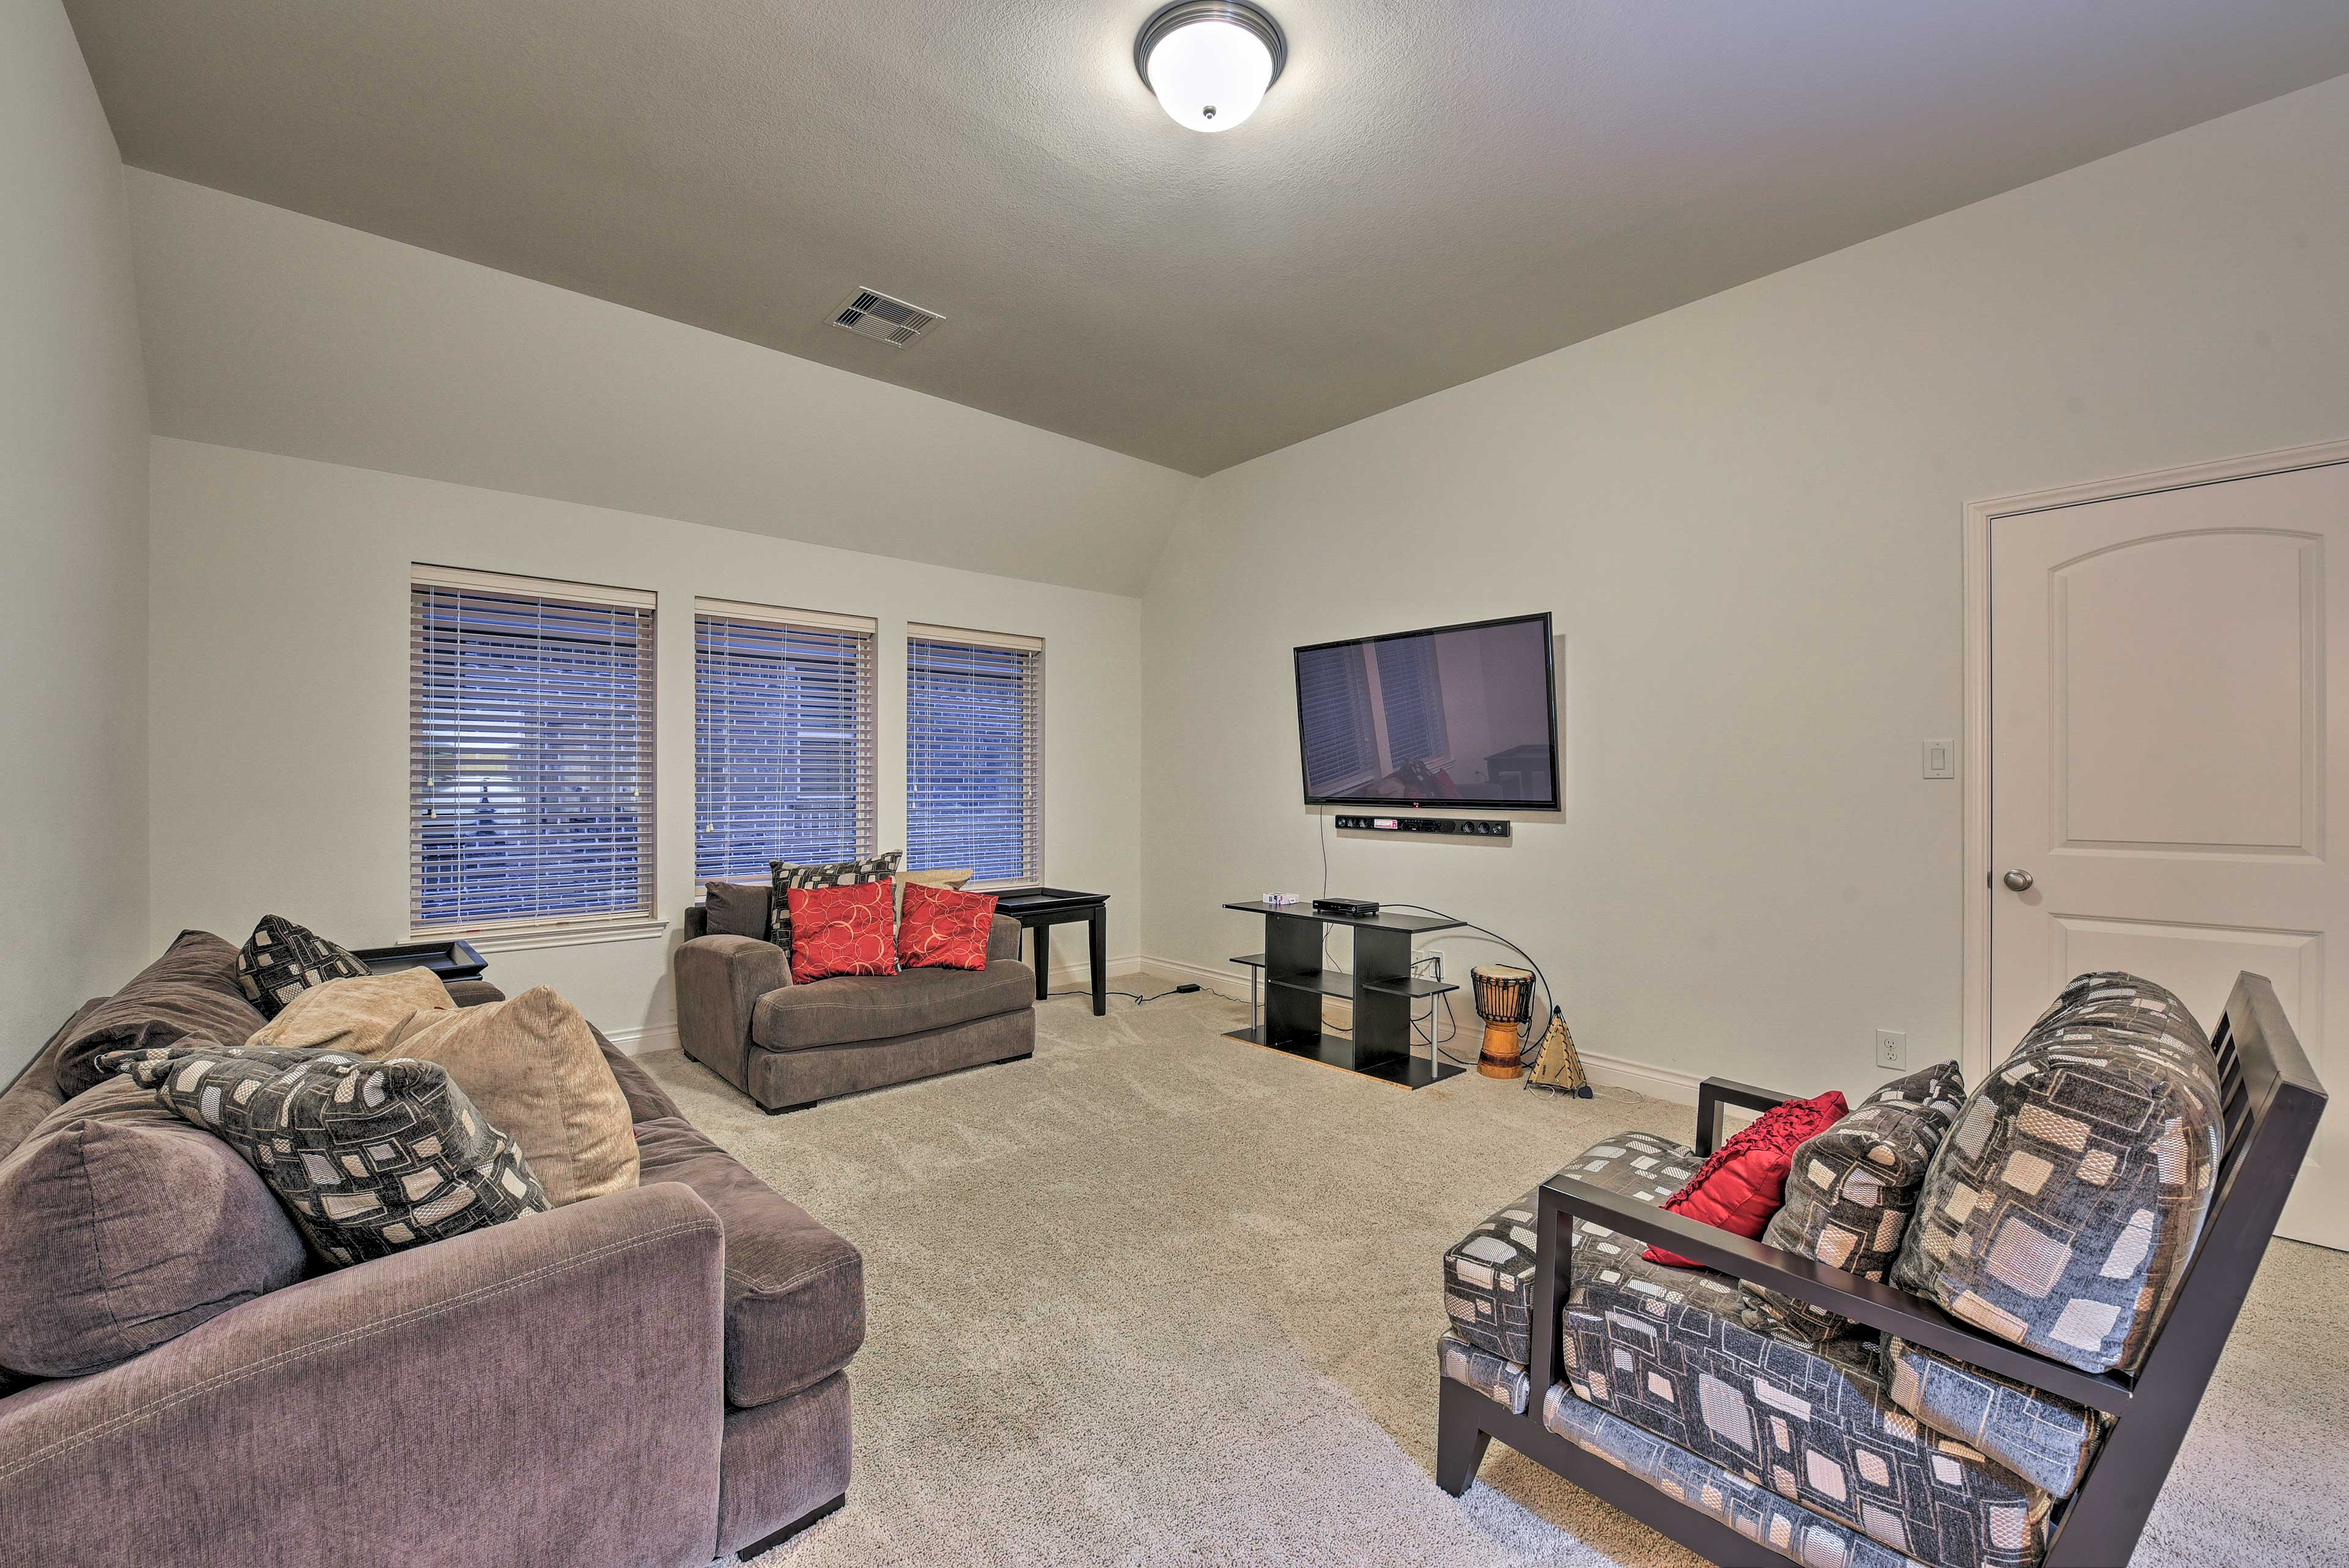 Kick back and relax in the second living room for family movie night!